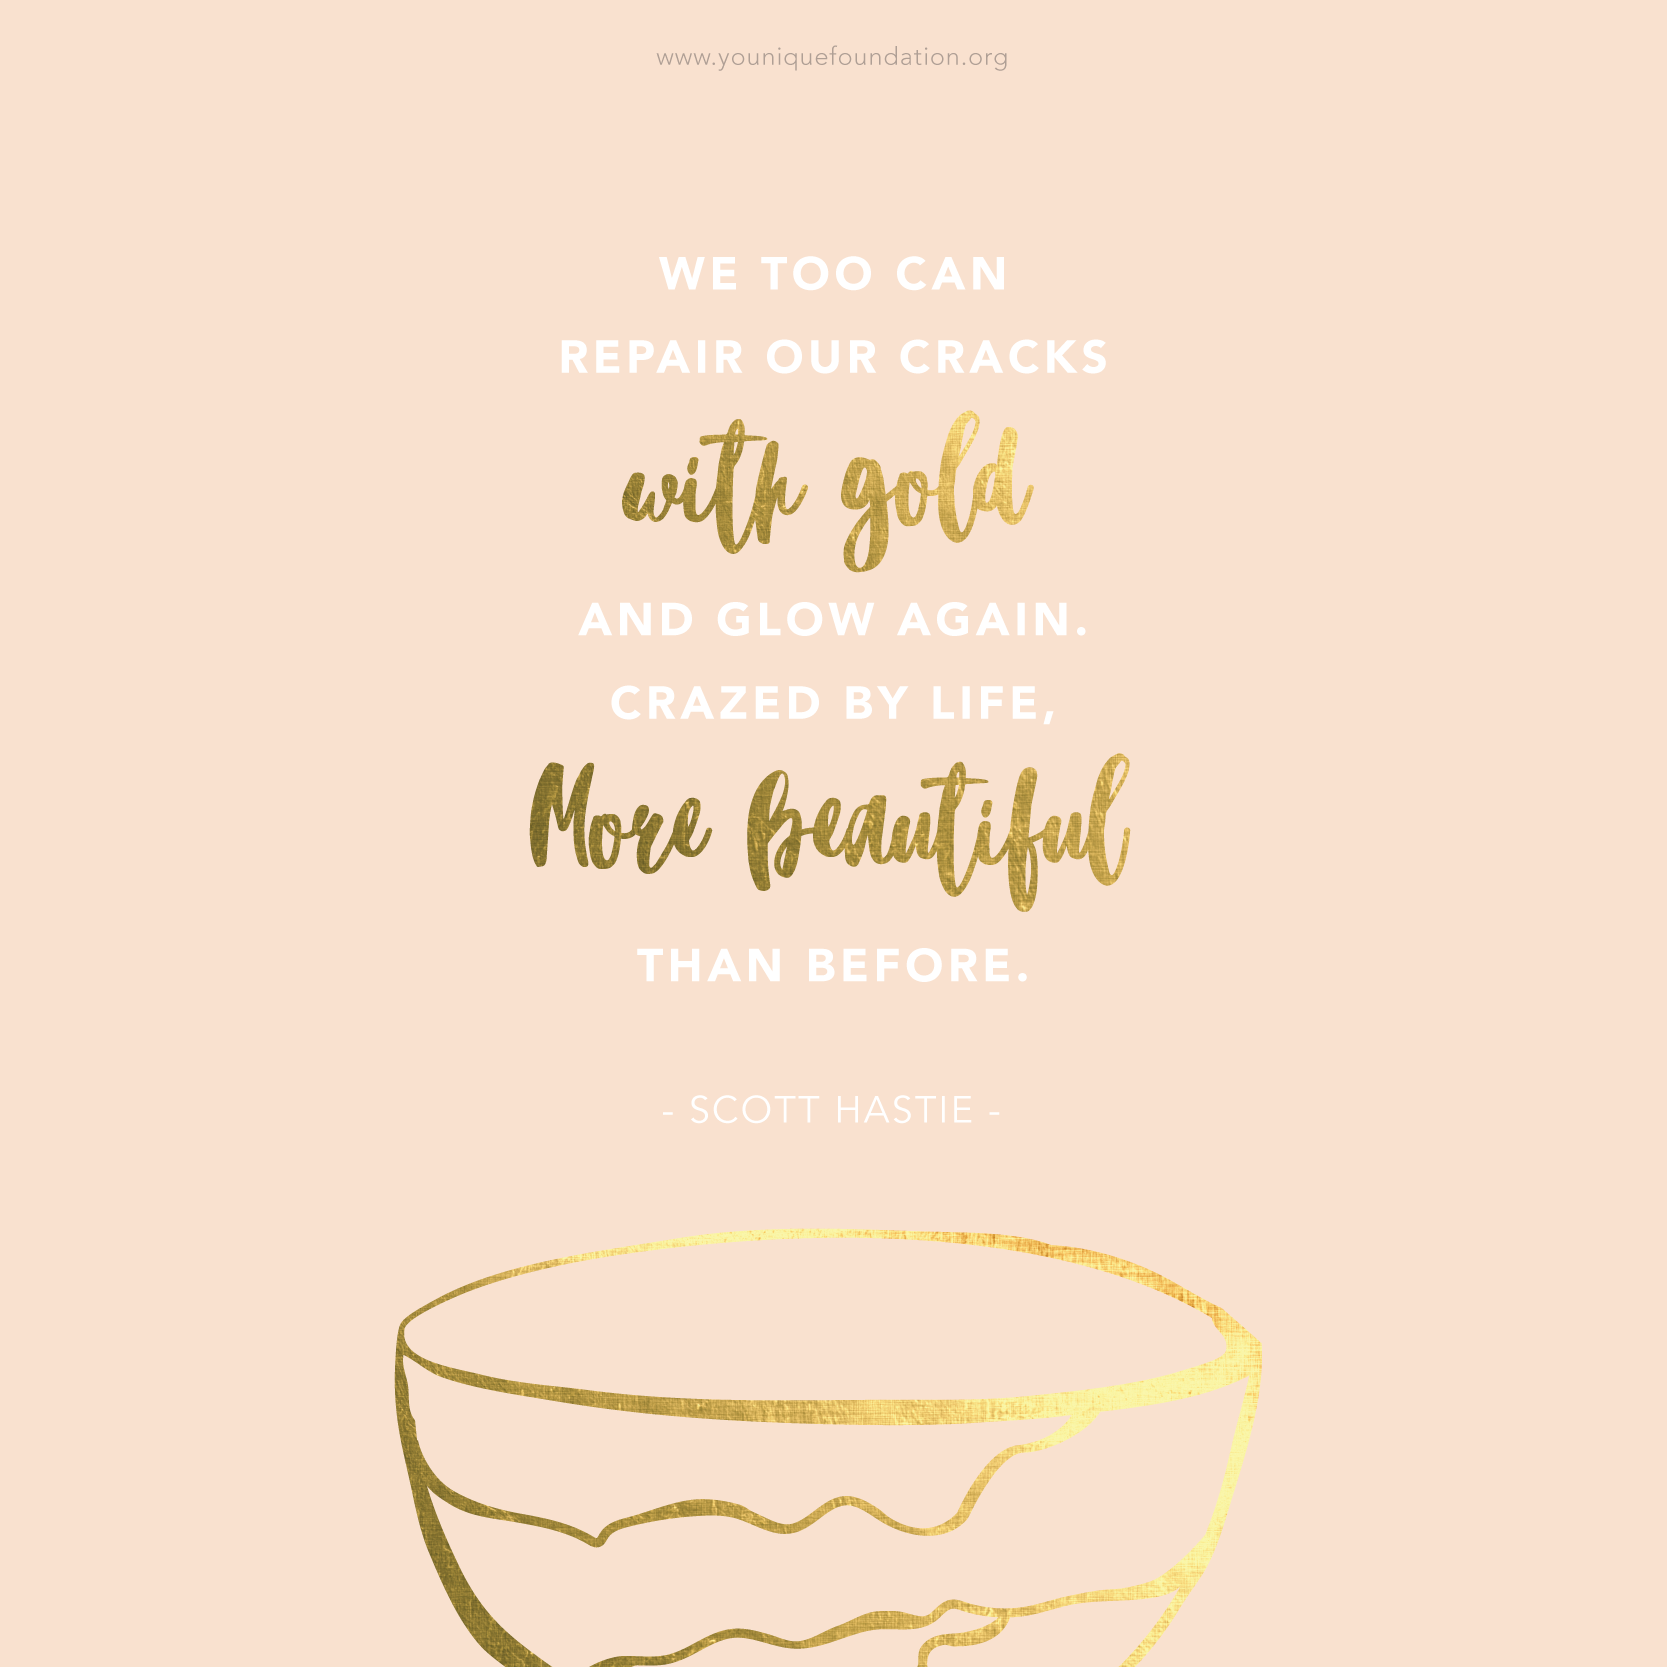 Foundation Quotes Pinthe Younique Foundation On Kintsugi  Pinterest  Inspirational